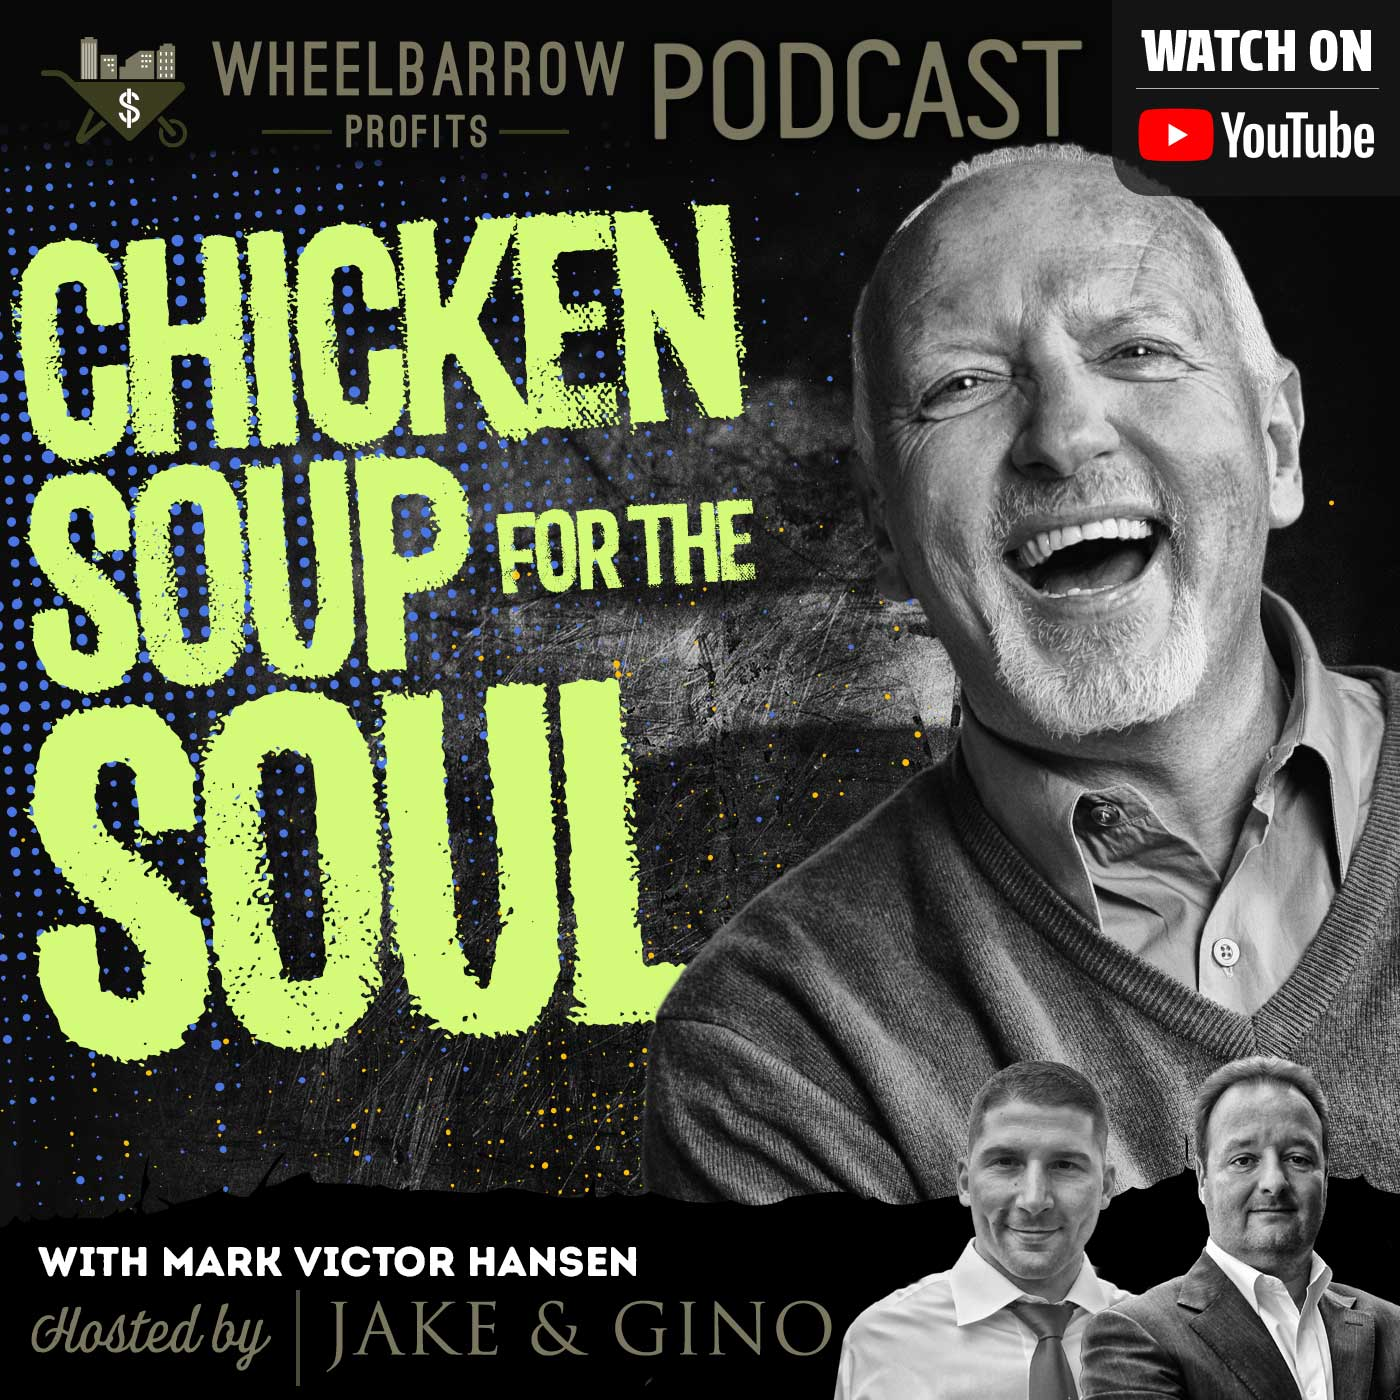 Chicken Soup for the Soul W/ Mark Victor Hansen